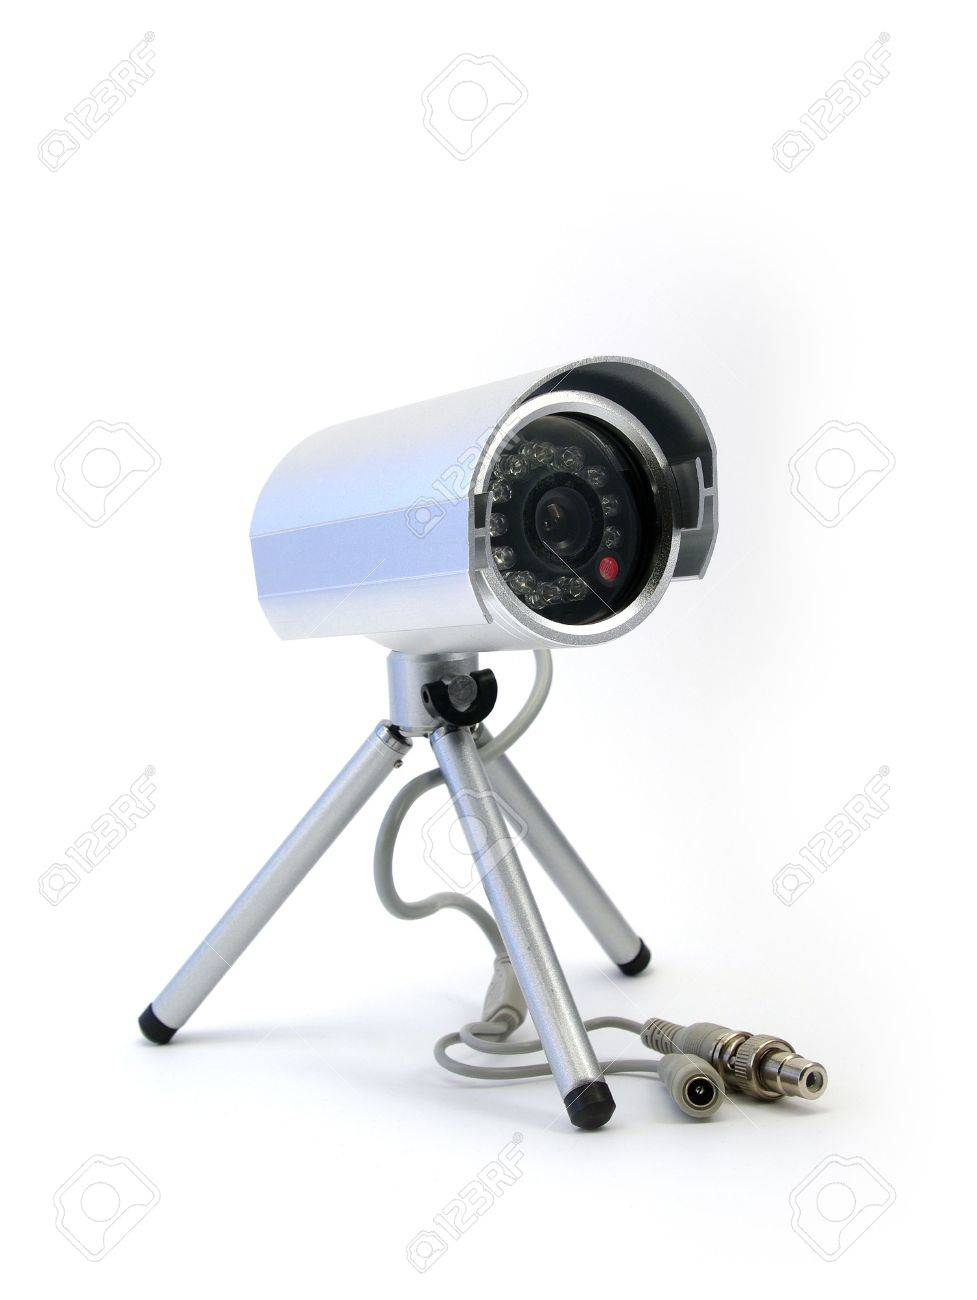 Security CCD video camera isolated on white background Stock Photo - 3659156